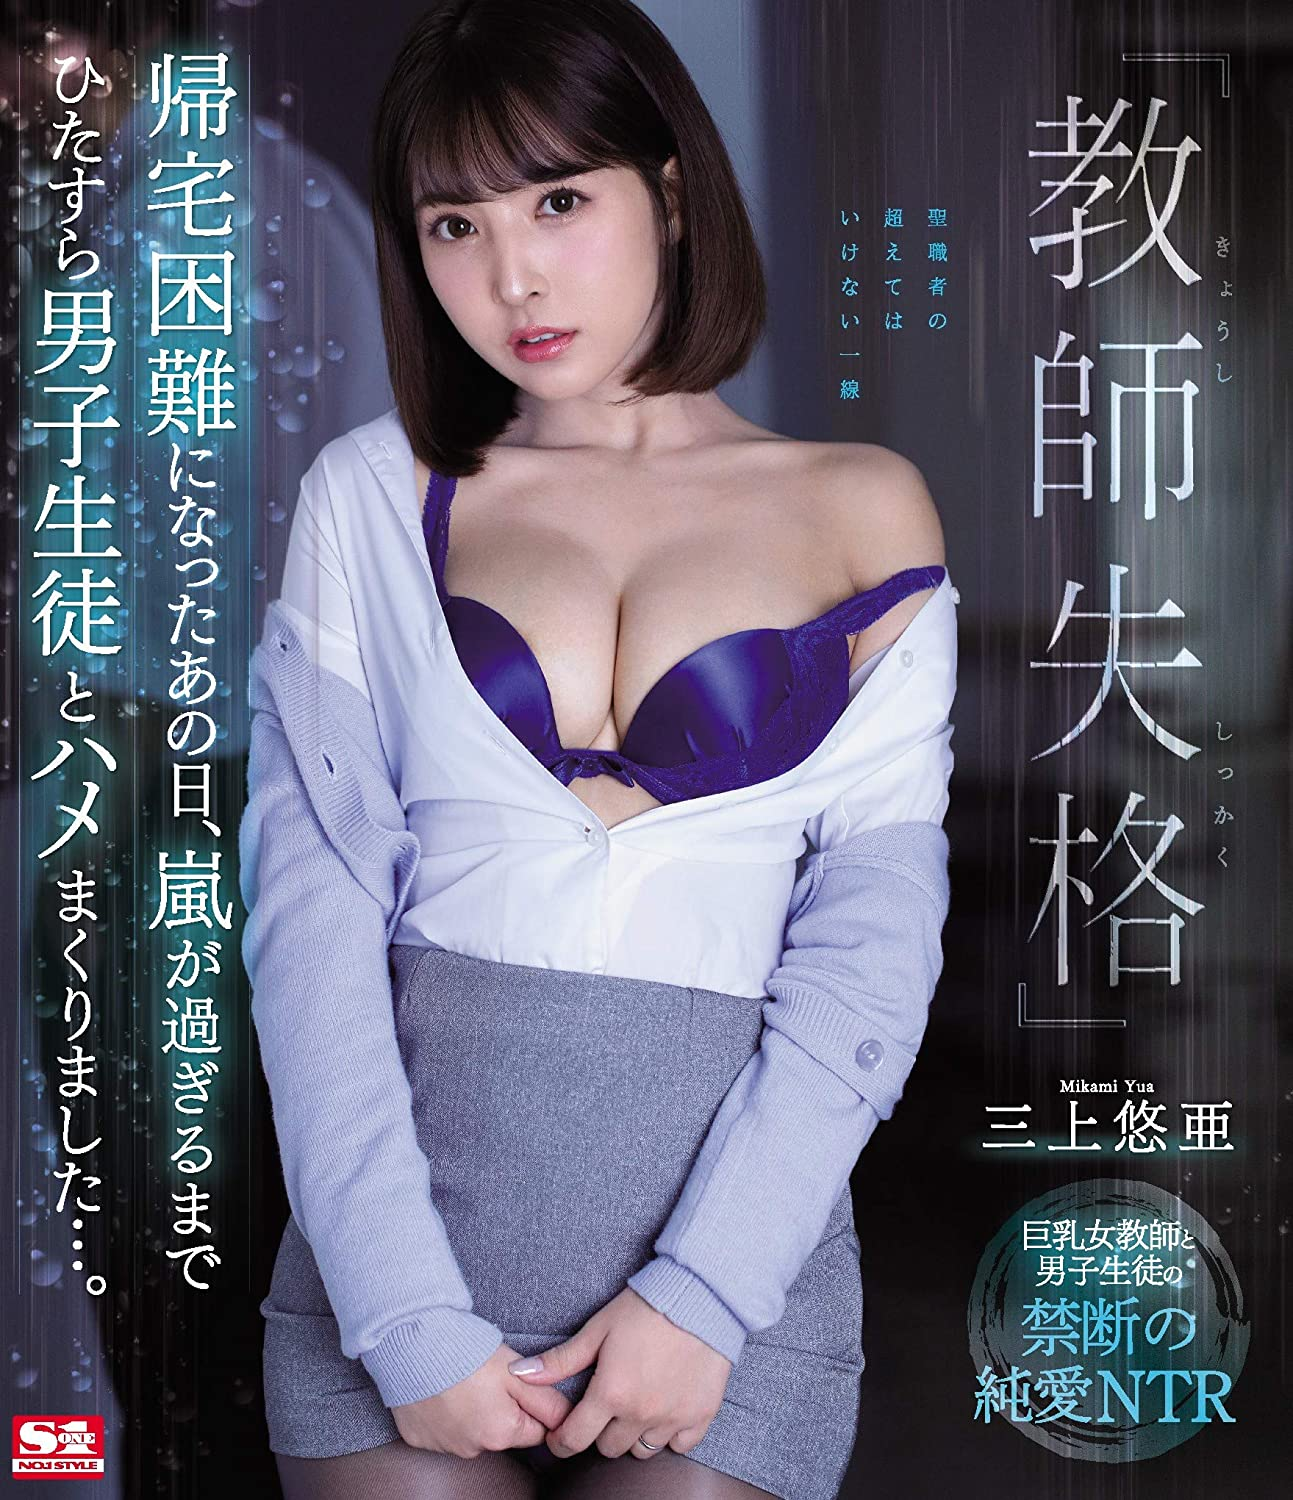 [SSNI-802] Poor Teacher - Trapped At School During A Storm, She Fucks Her Male Students Until The Weather Clears... Yua Mikami